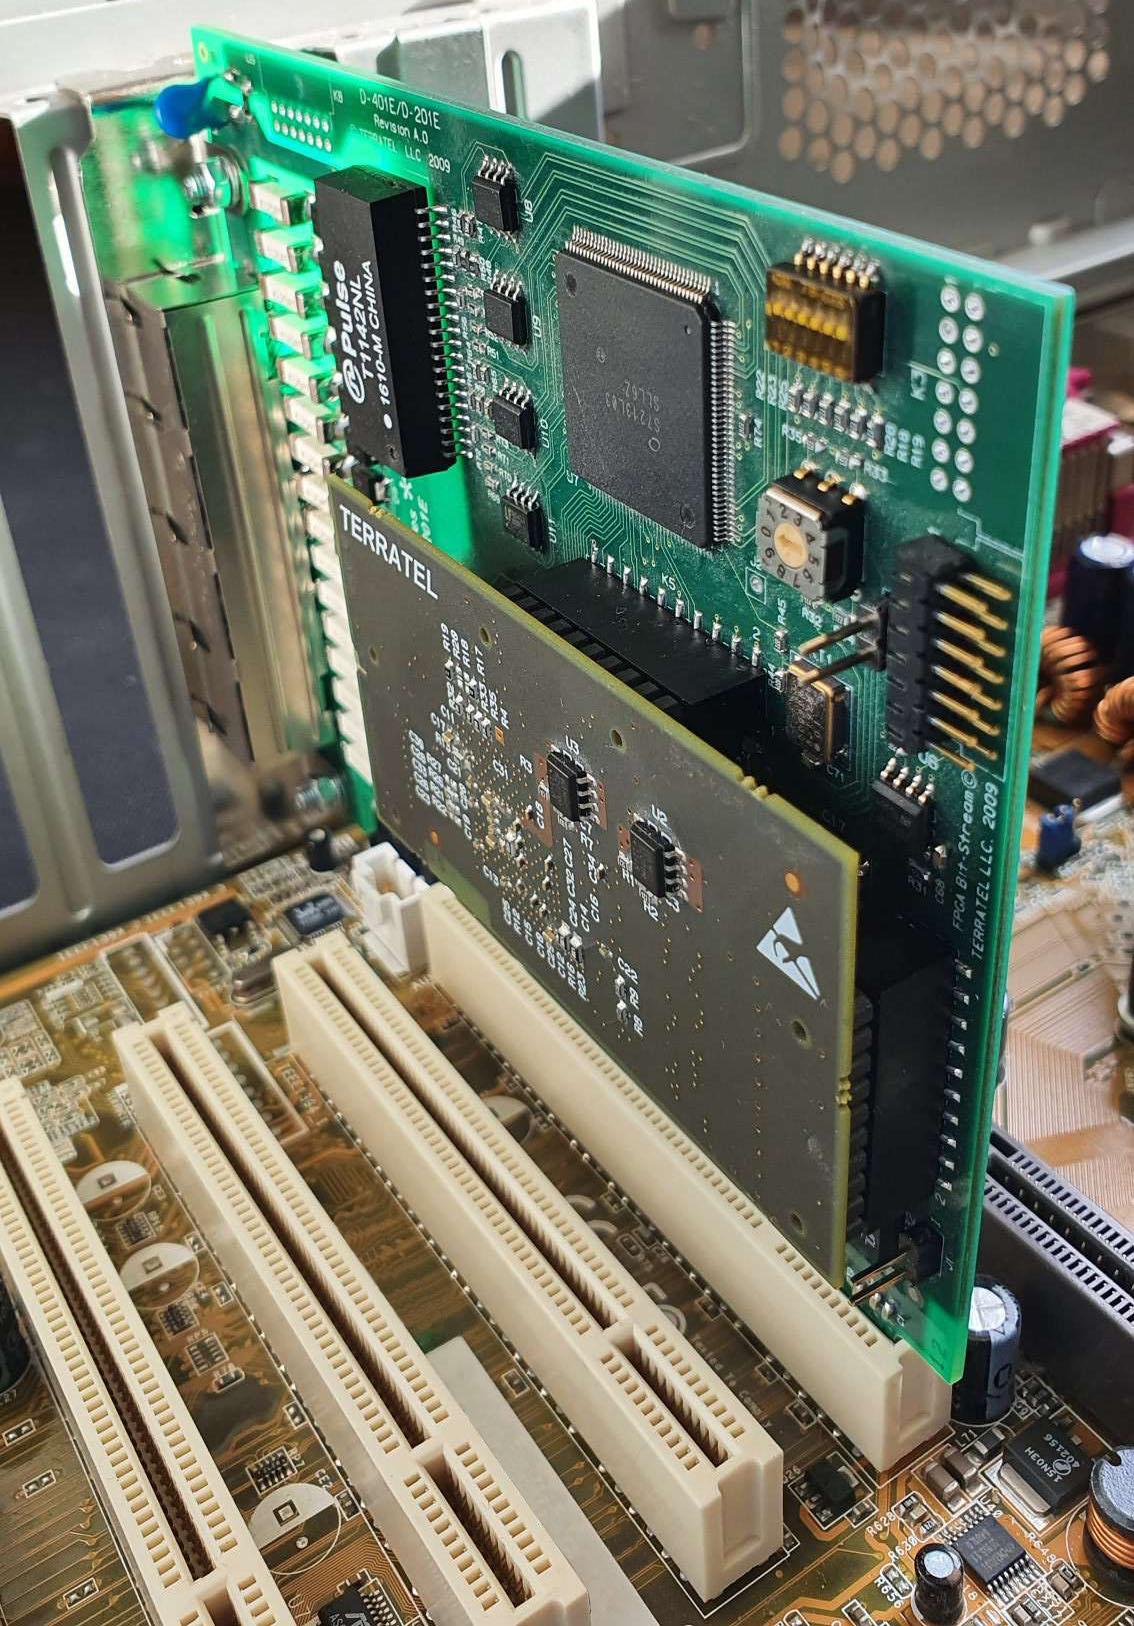 Digital Telephony Board 4E1 in Asterisk PCI server slot